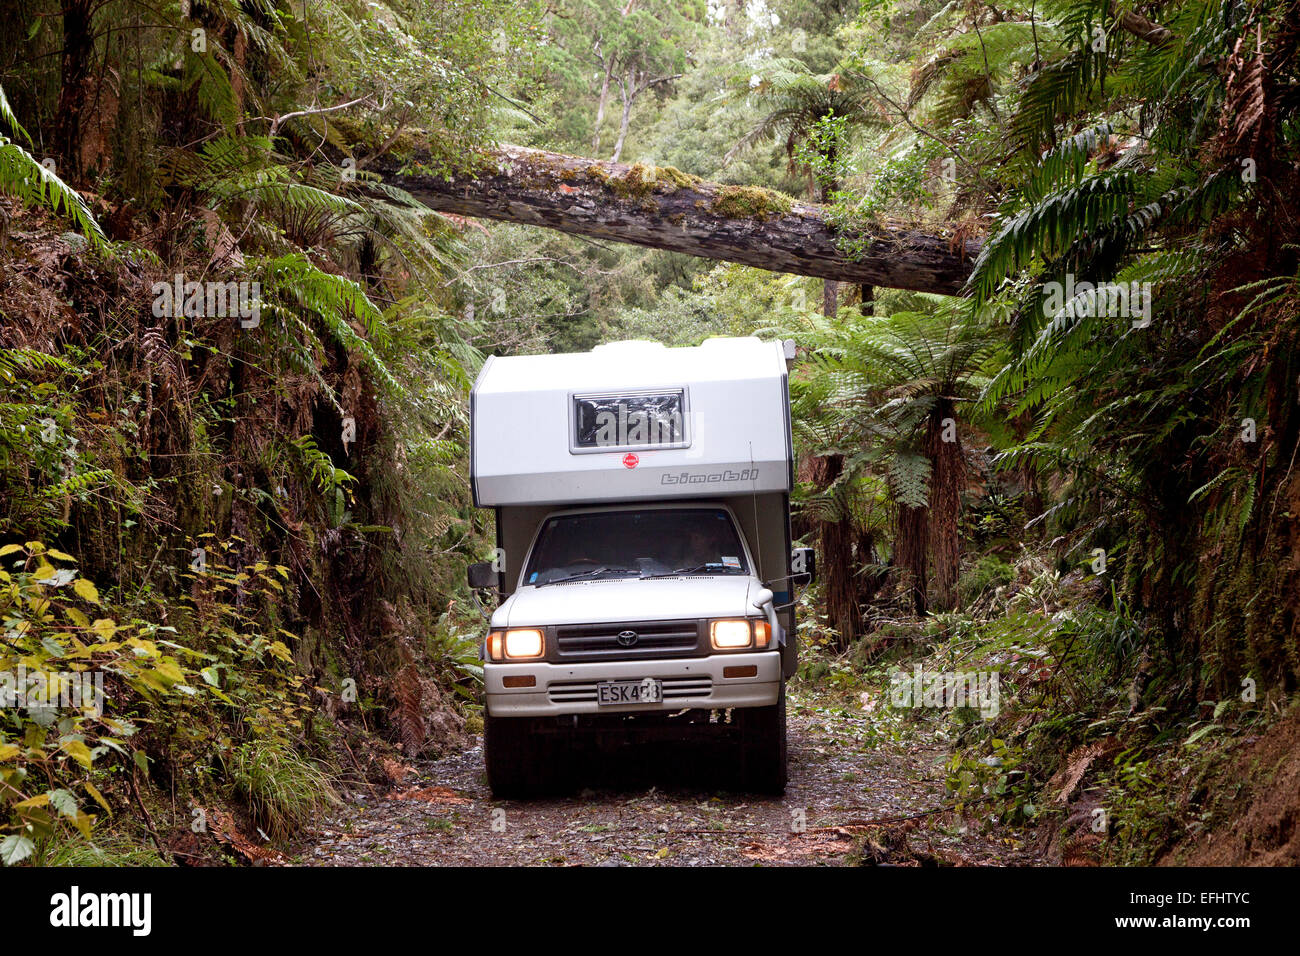 4WD camper on a forest track in Whirinaki Forest, North Island, New Zealand - Stock Image